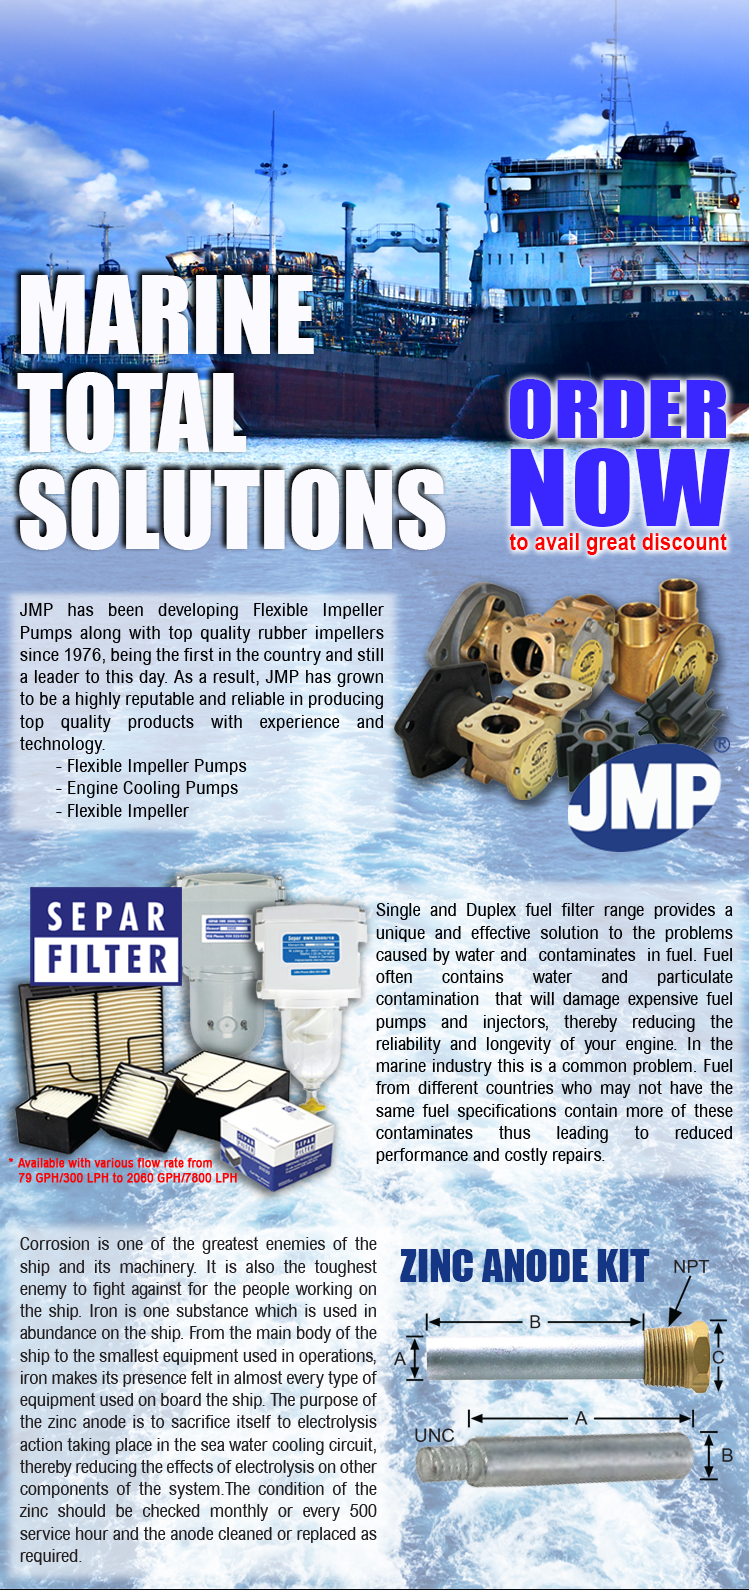 Marine Total Solutions - Order Now